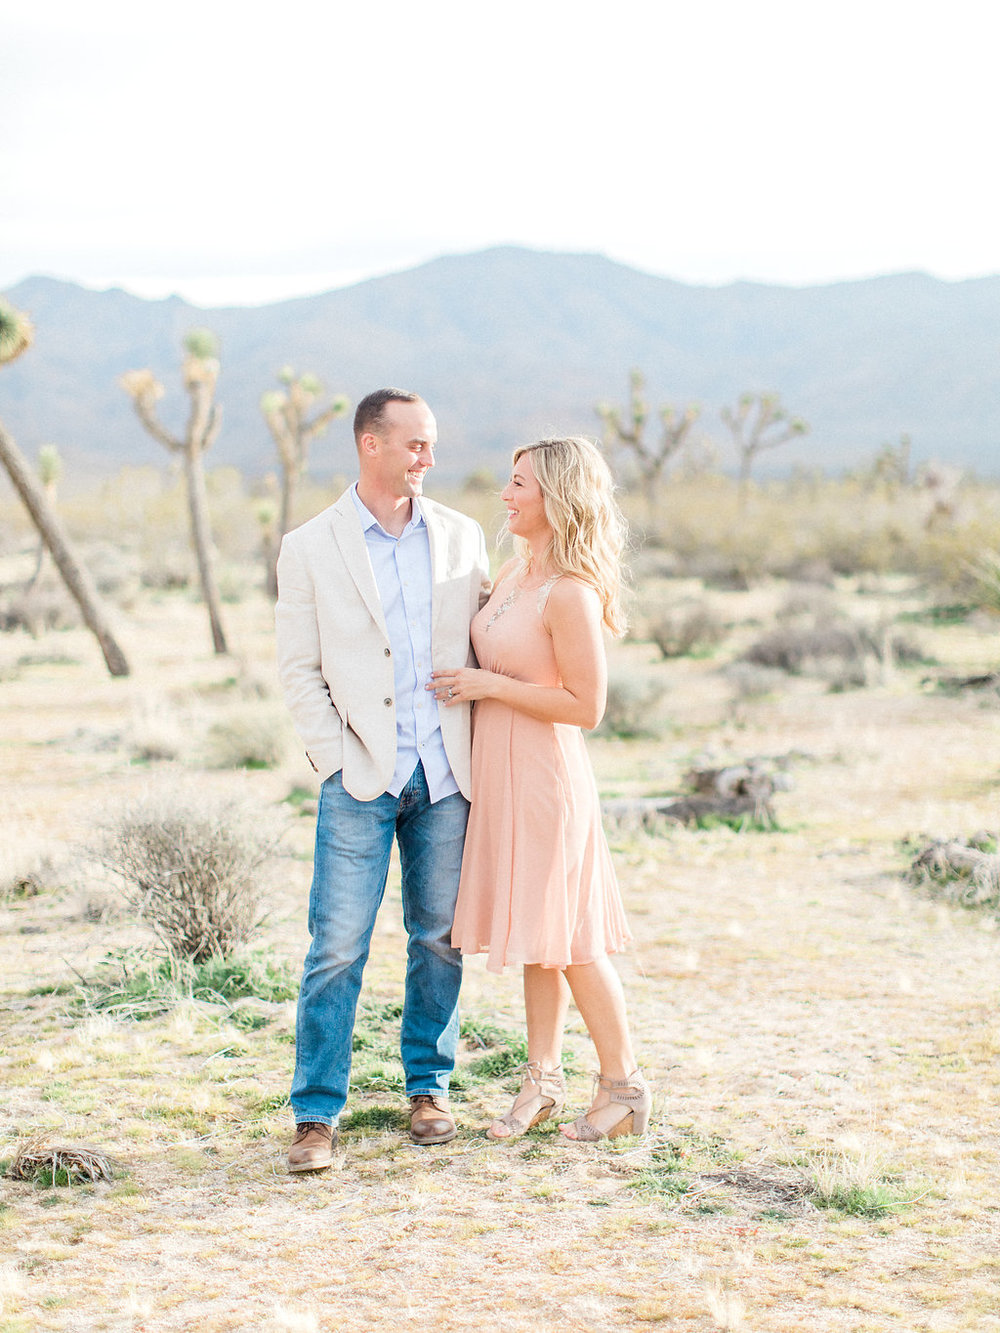 Joshua Tree Engagement Session | What to Wear for Pictures | Southern California Wedding Photographer | Mastin Labs Fuji Film | Fine Art Photographer | Desert Shoot | Desert Scenes.jpg